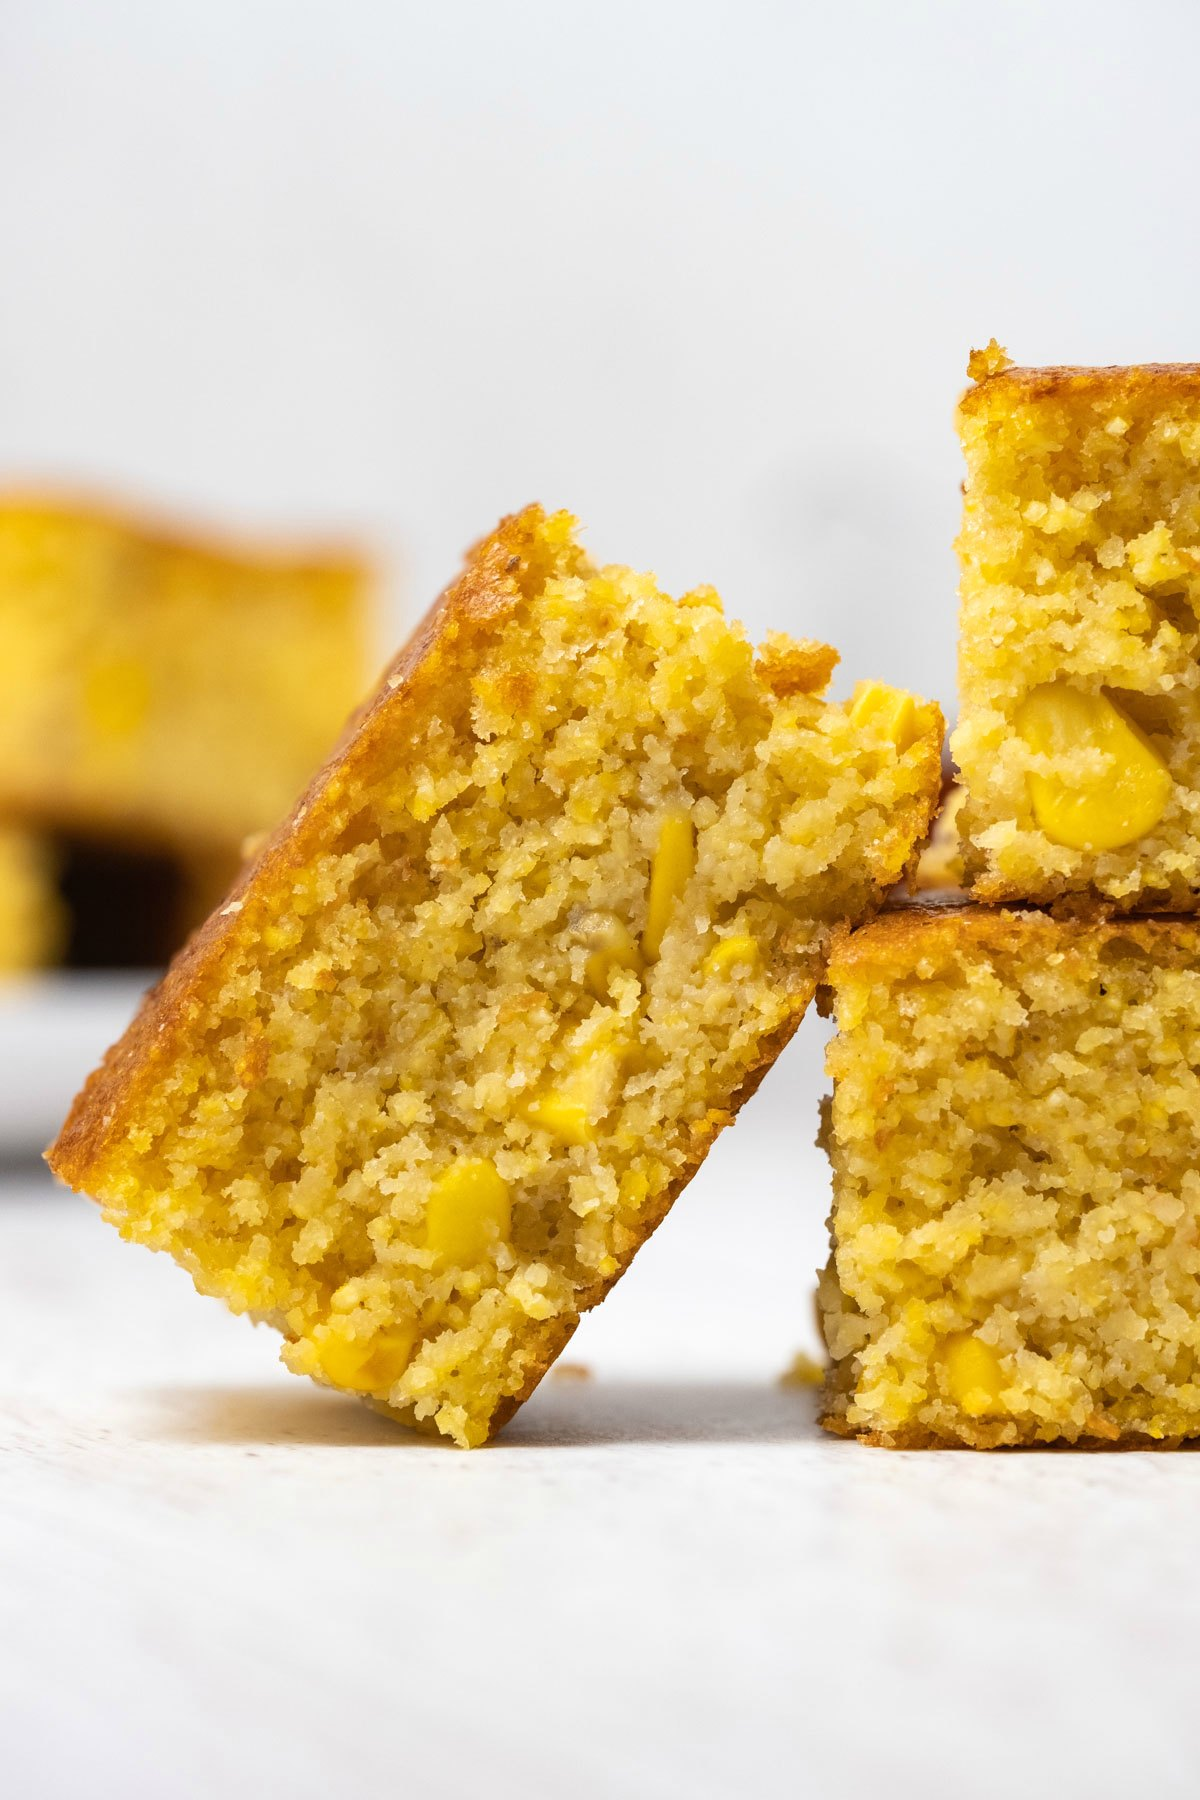 Slice of cornbread leaning against cornbread in a stack.